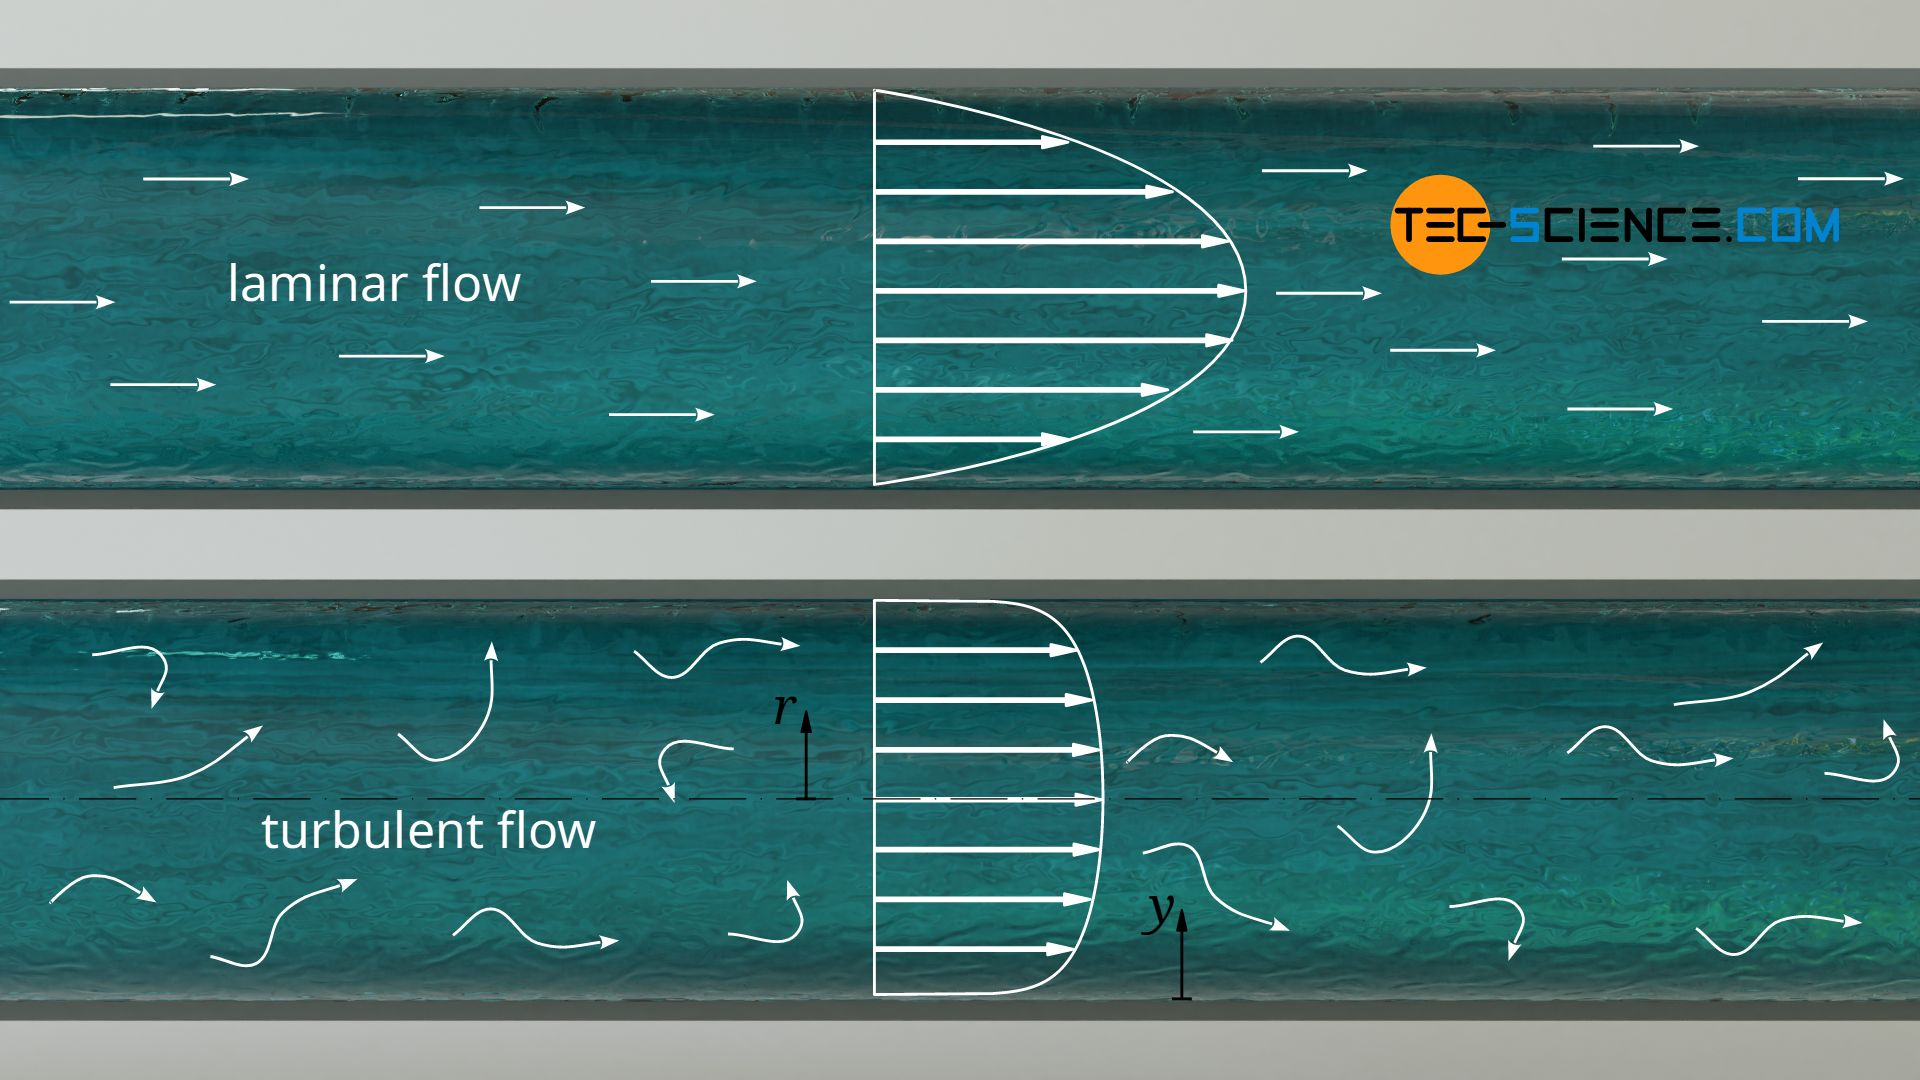 Velocity profile for laminar and turbulent flow in a pipe